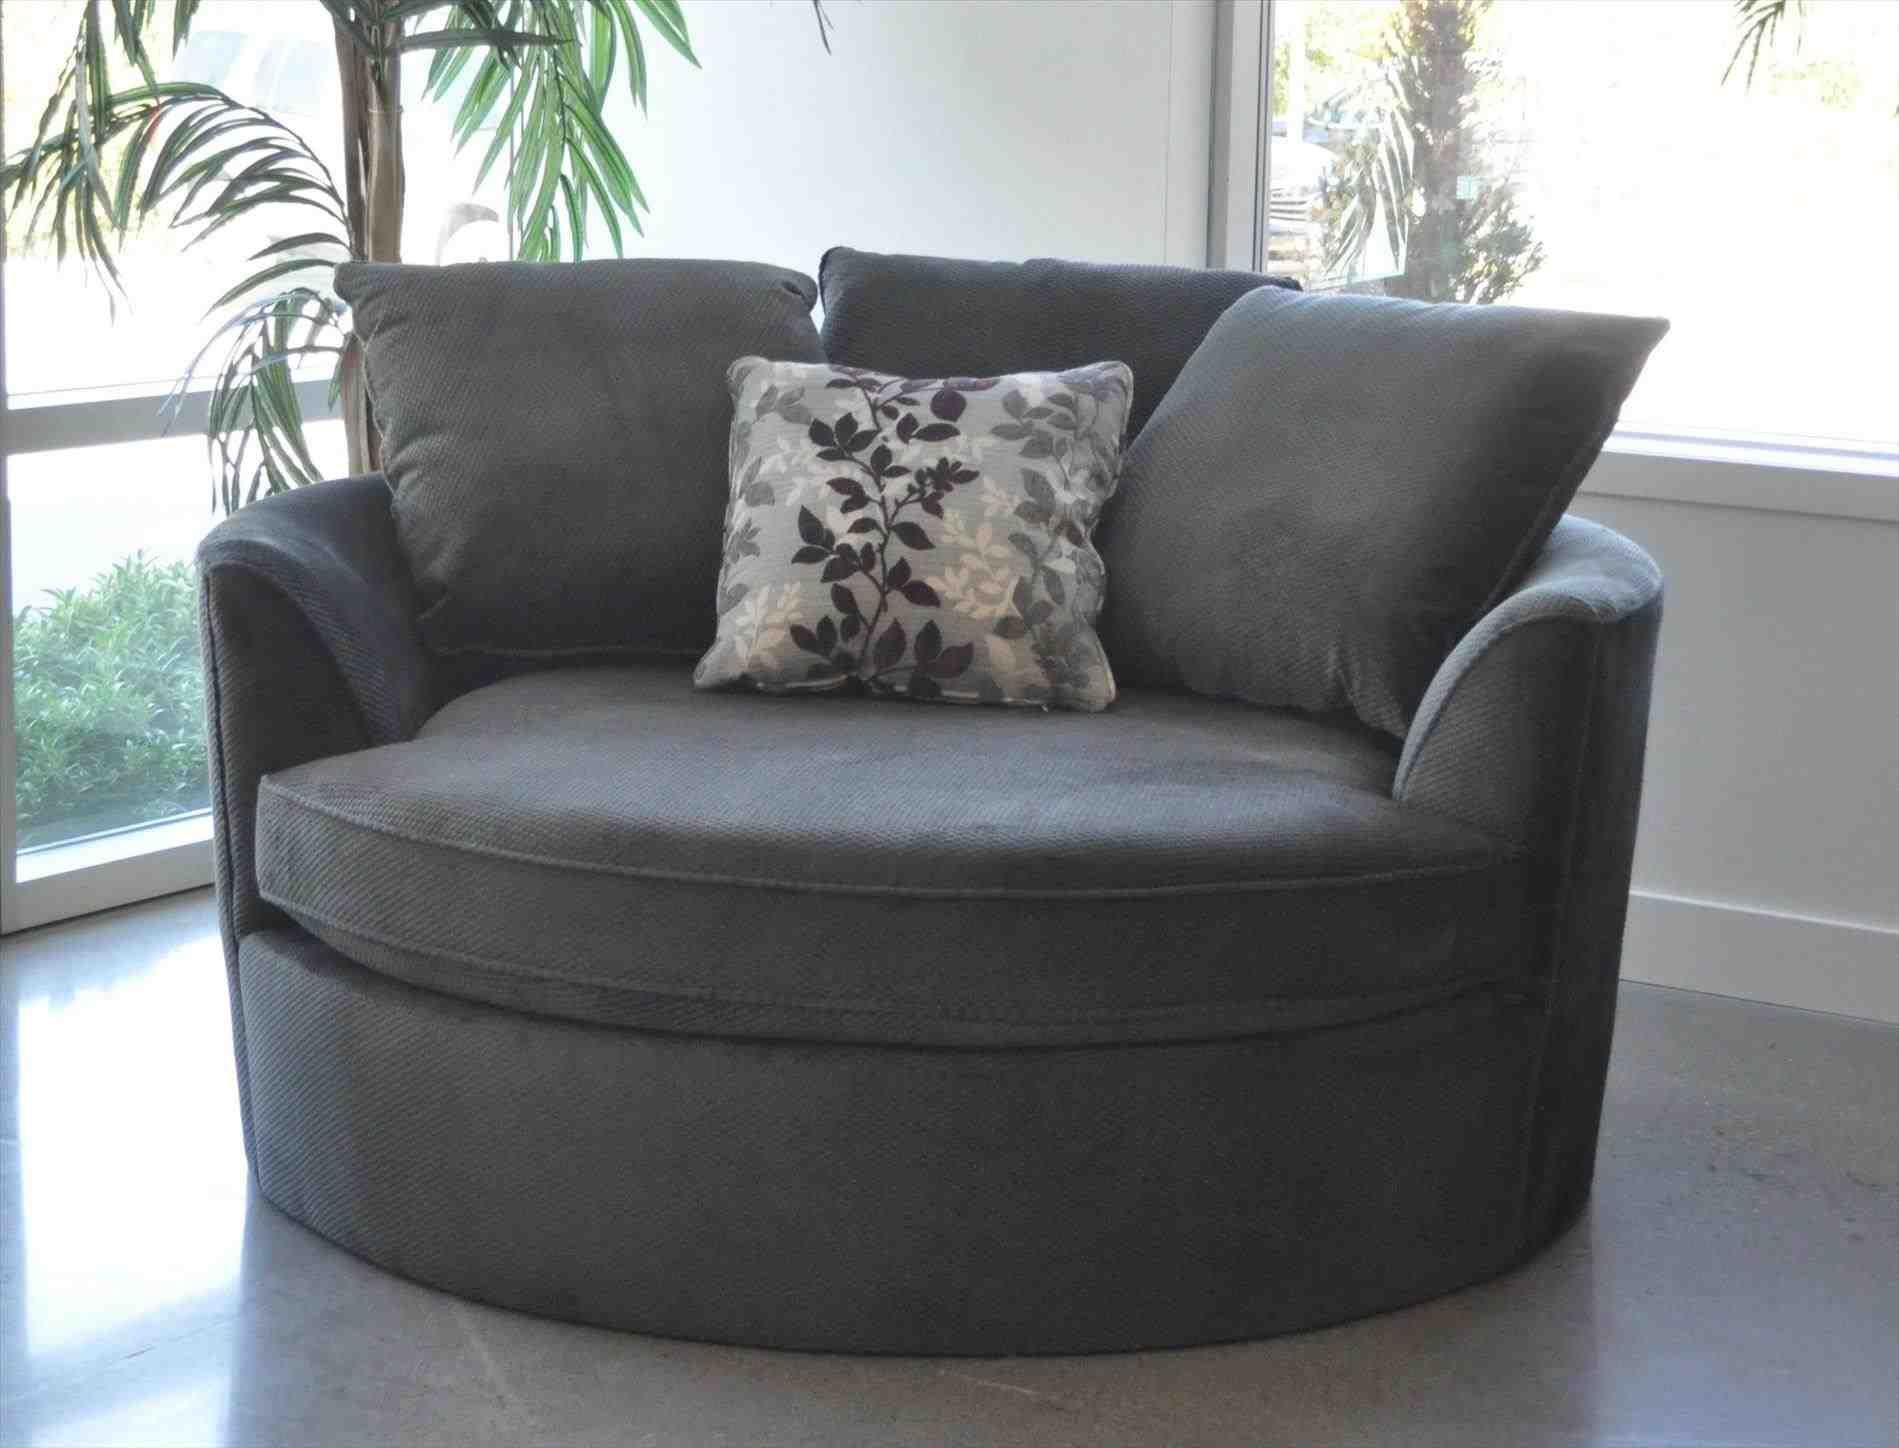 Snuggle Chair And A Half Sofa And Cuddle Chair Set Tehranmix Decoration With Regard To 3 Seater Sofa Barrel Chair Armless Accent Chair Comfy Leather Chair